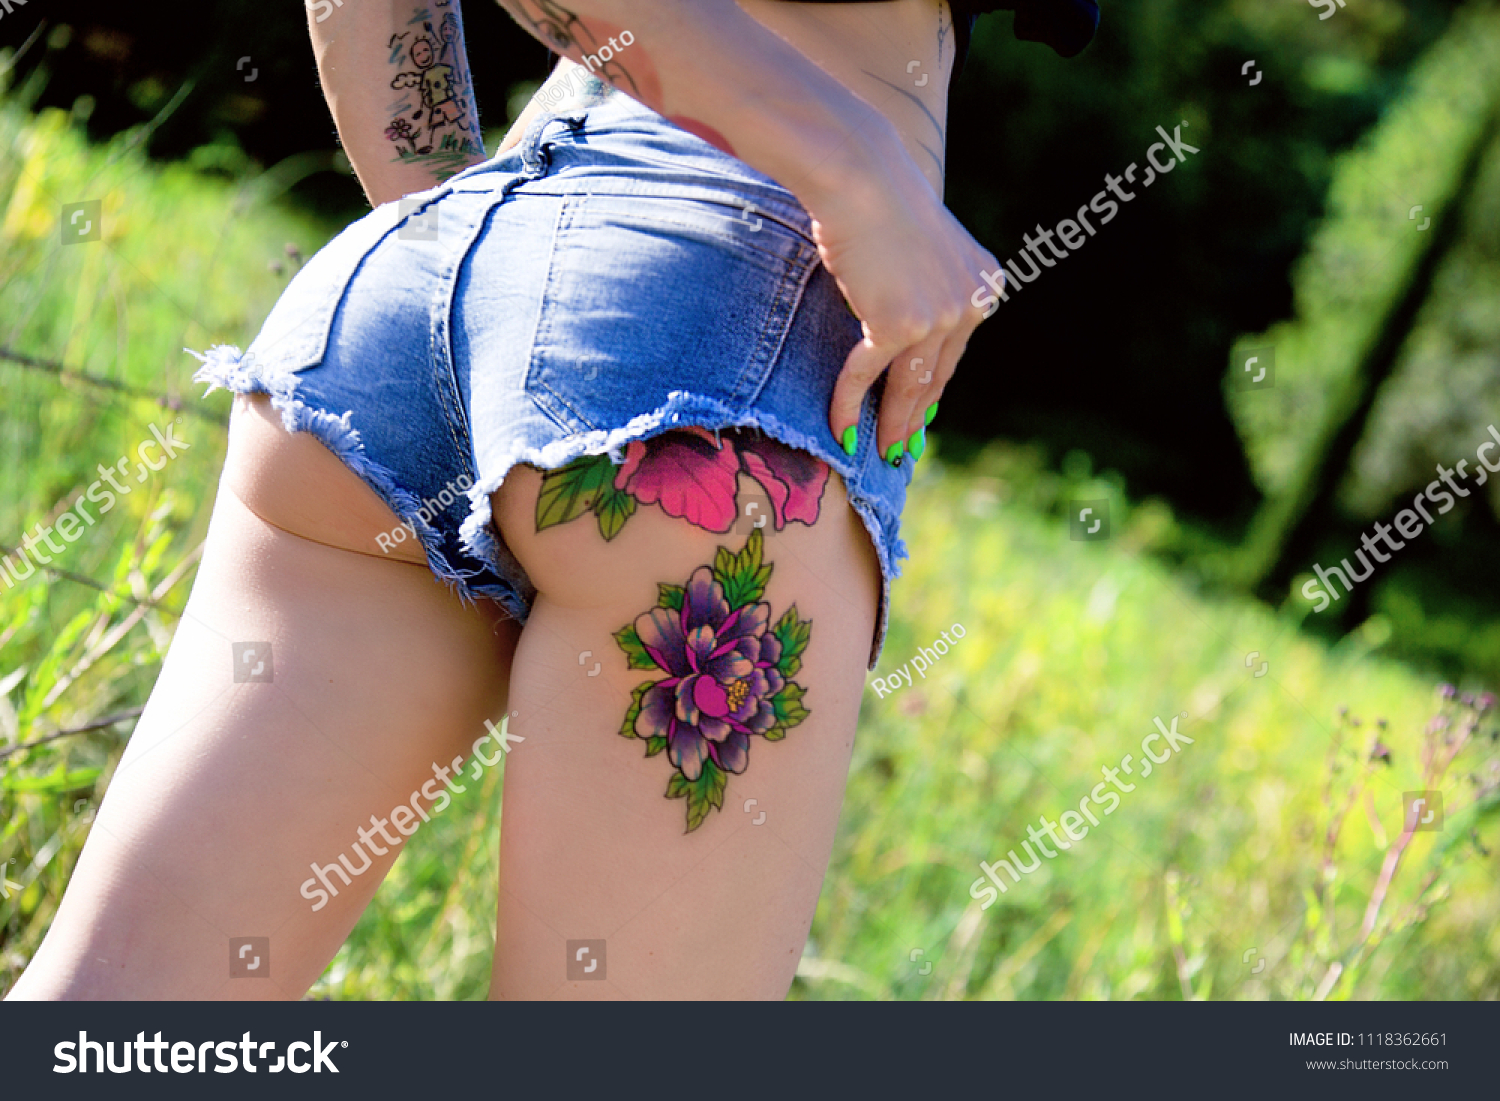 Girl Shows Tattoo On Her Hips Stock Photo Edit Now 1118362661